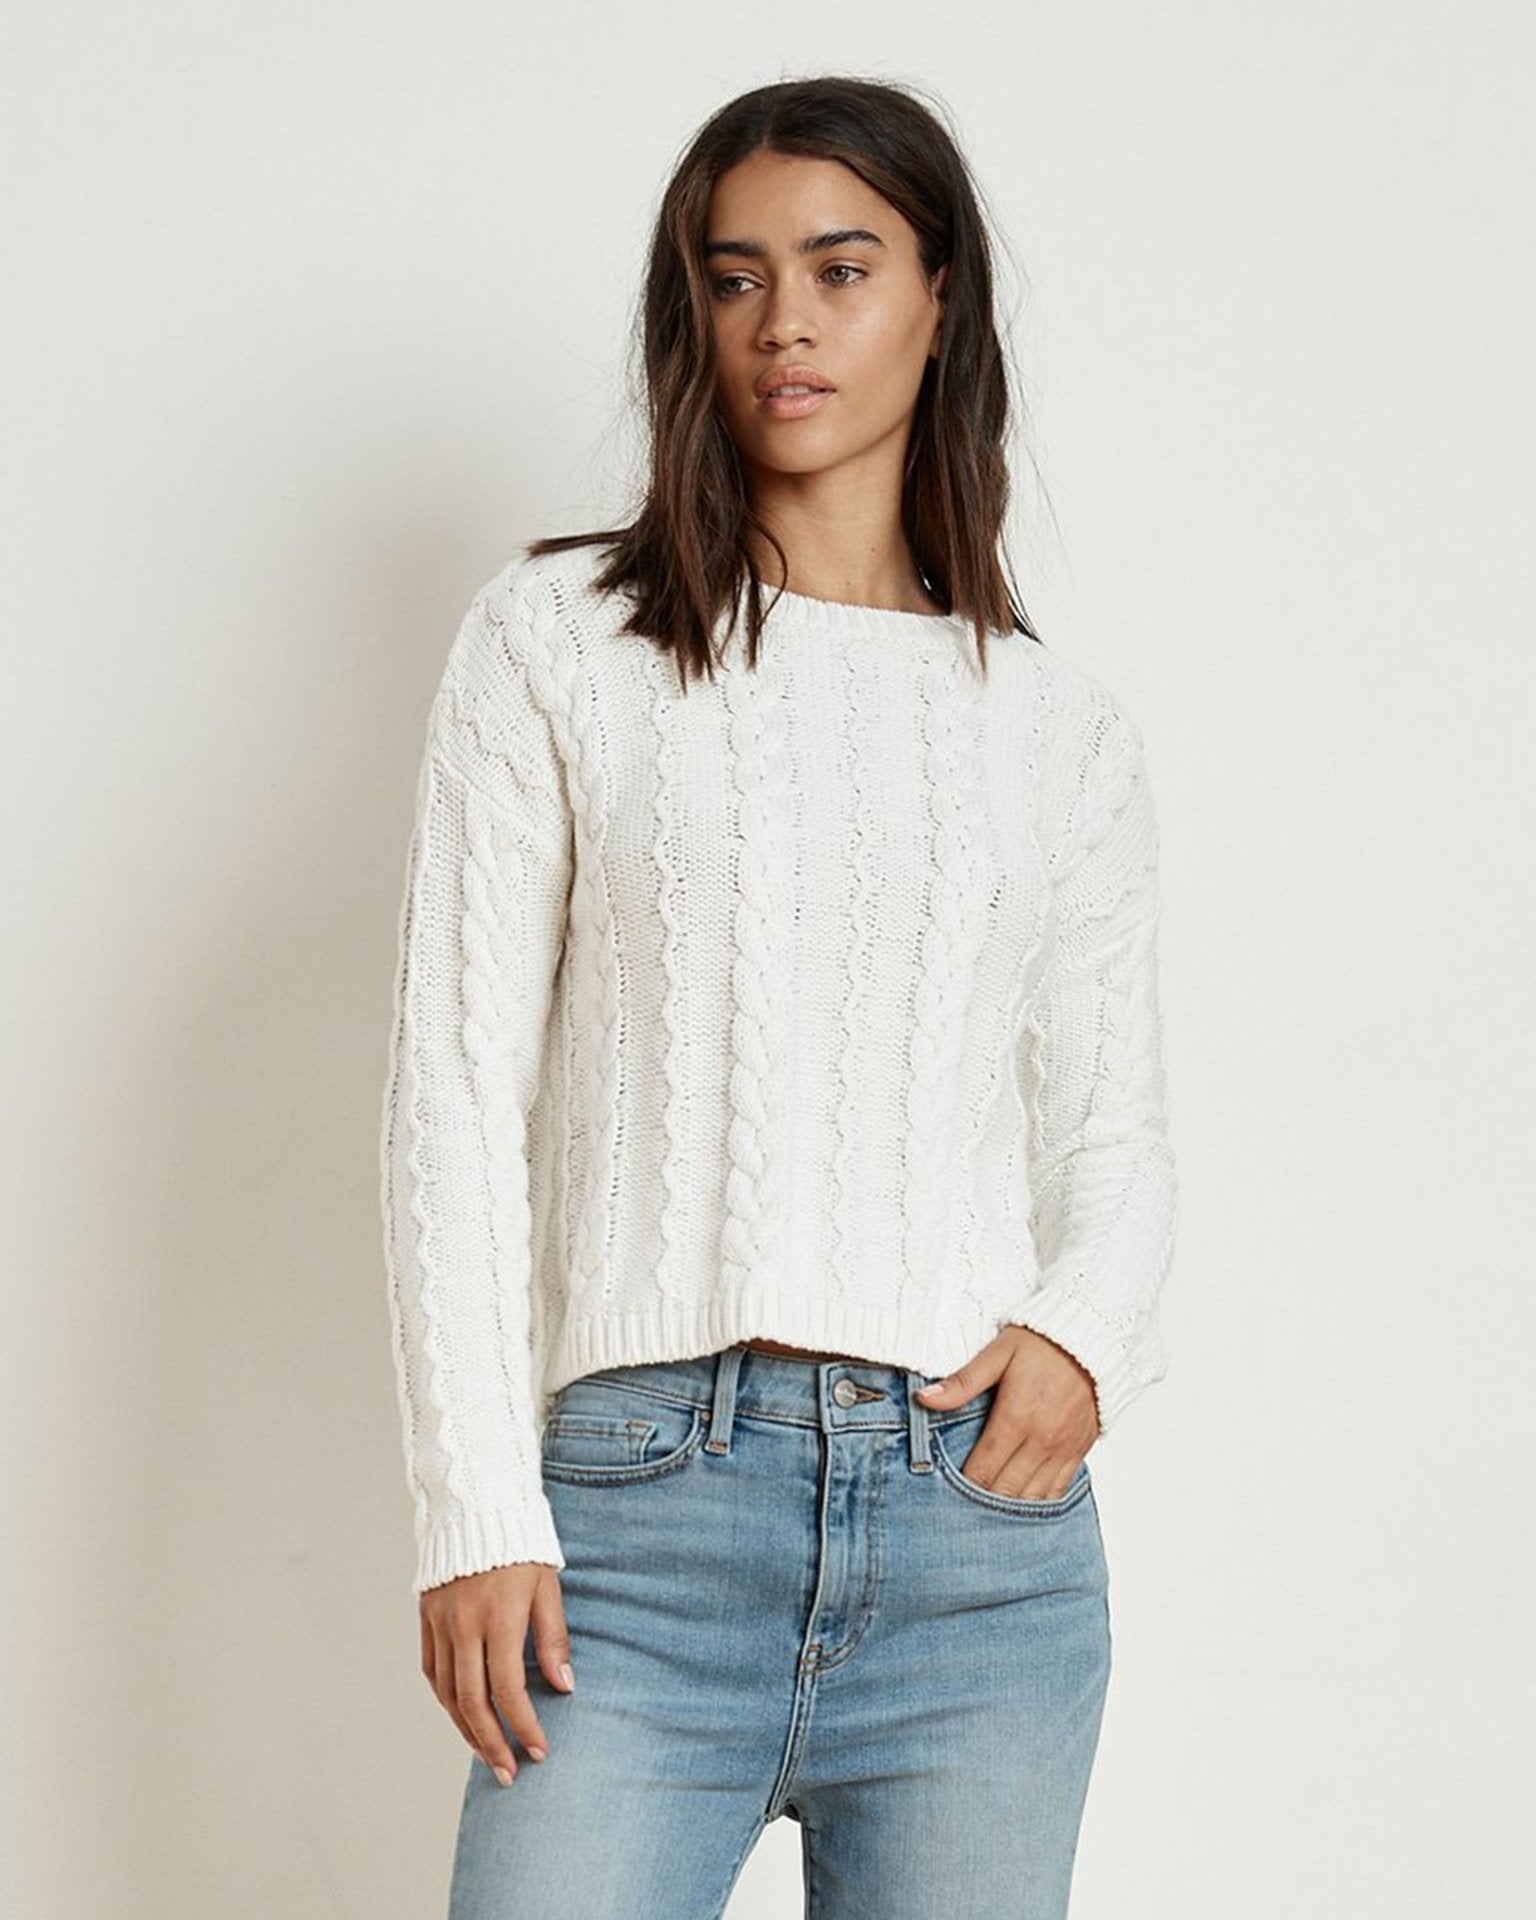 Velvet Clothing Milk / XS Arely Cotton Cable Sweater